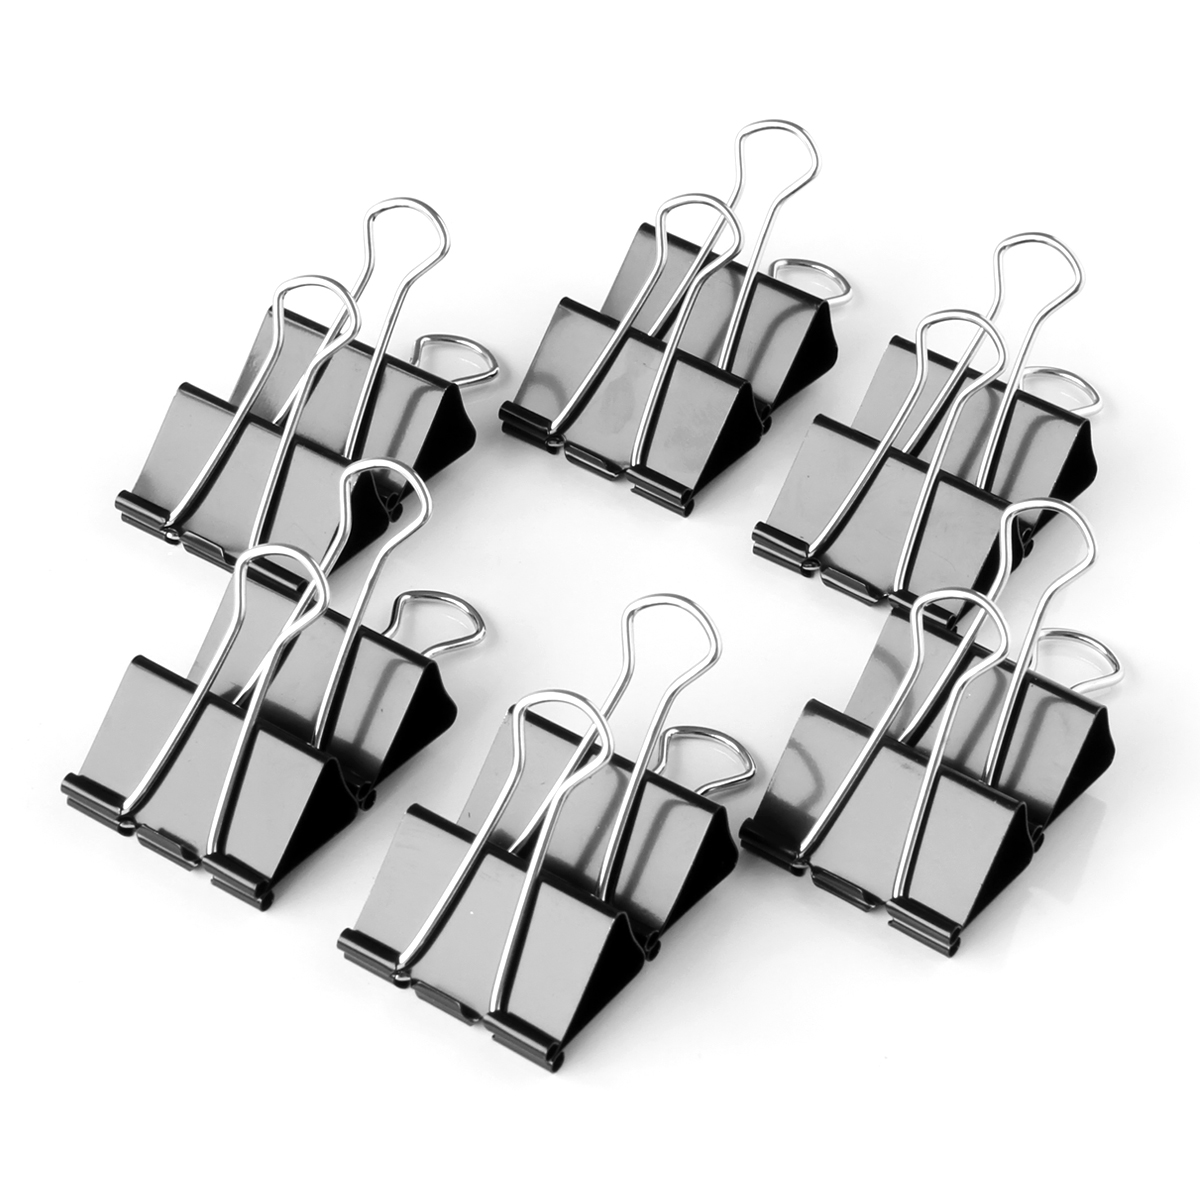 Deli stationery 19mm black binder clips 12/box 9545 dovetail clamp clip purse